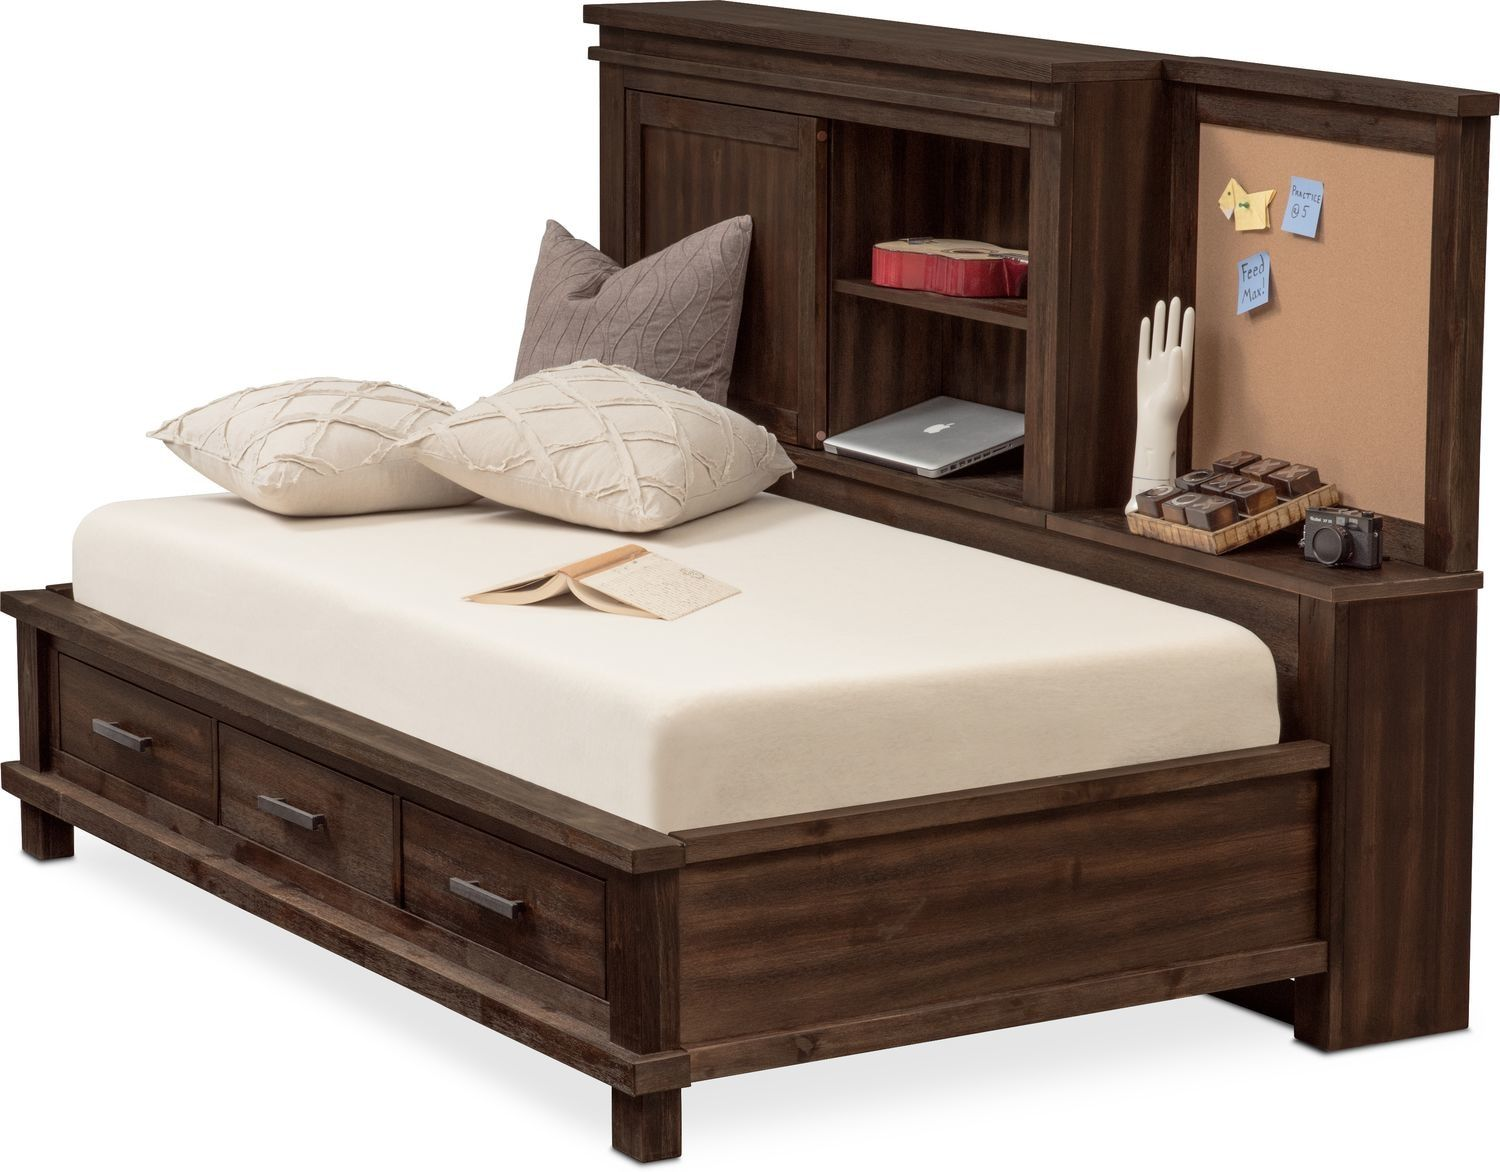 Tribeca Lounge Storage Bed Value City Furniture Furniture Storage Bed